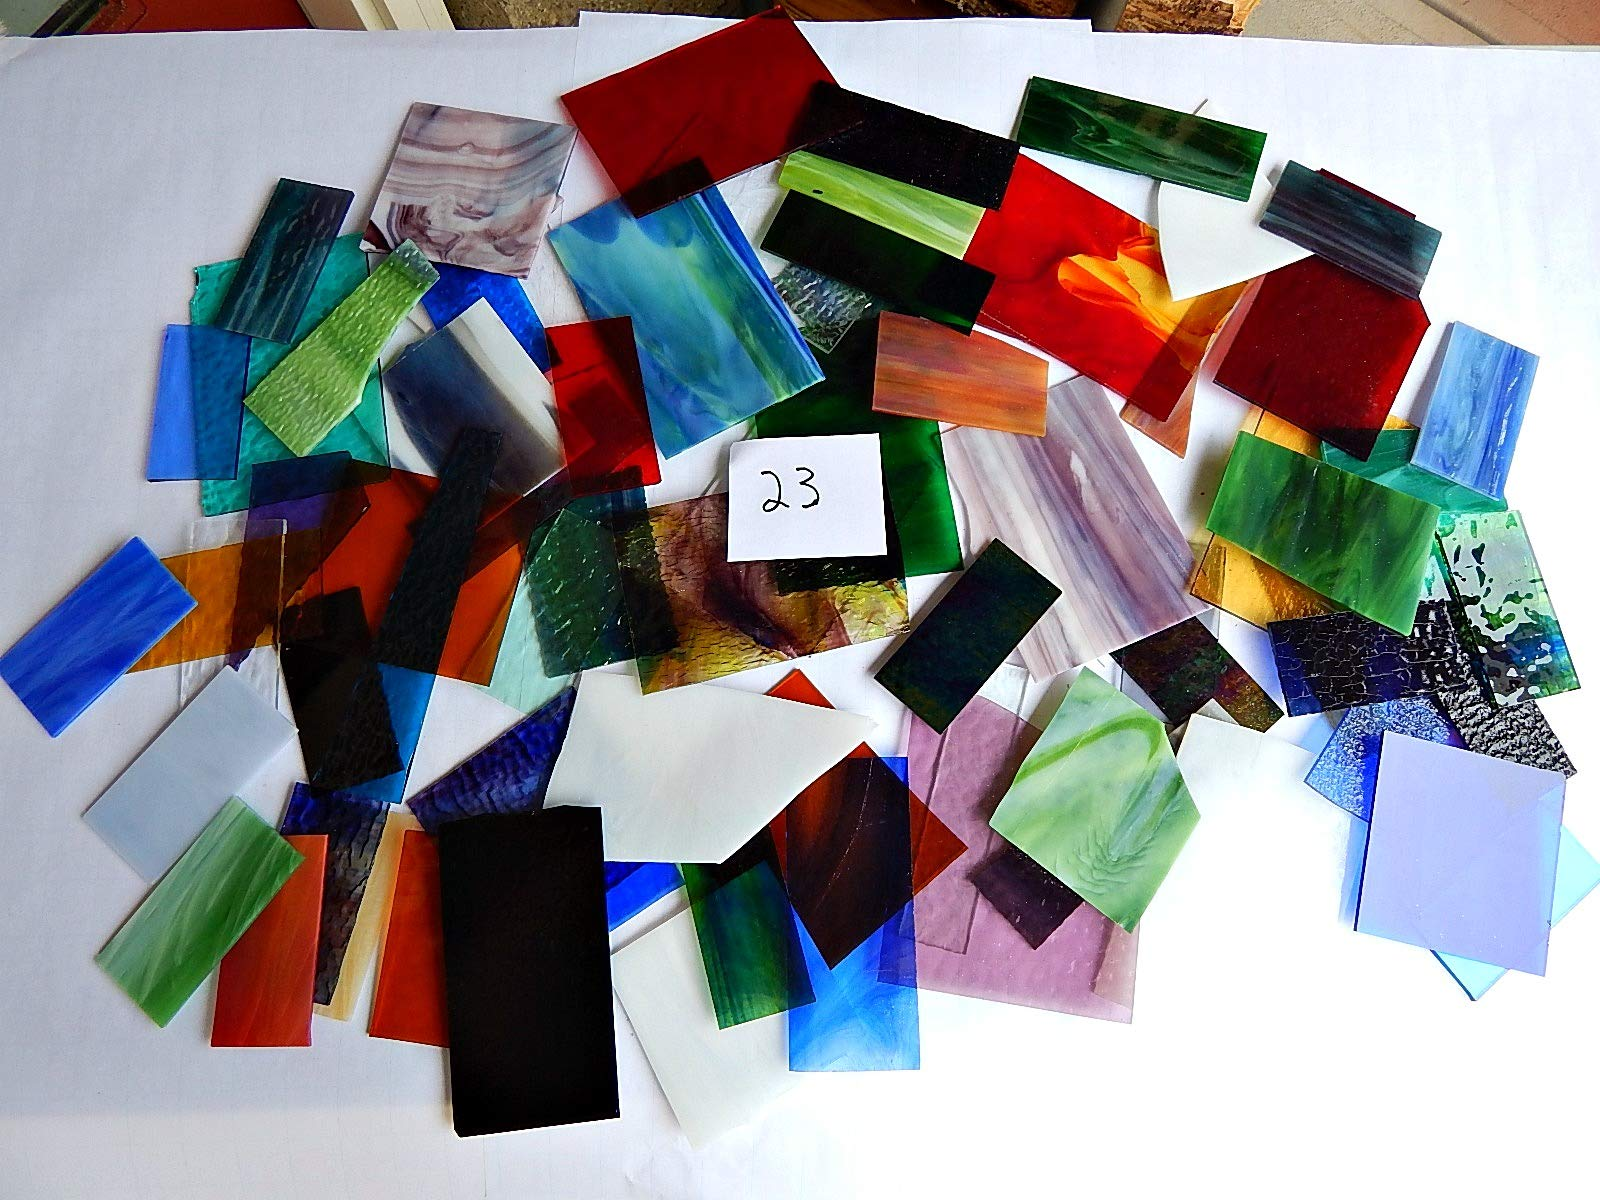 Over 10 LBS Larger Pieces Spectrum Wissmach Stained Glass Mosaic Scrap LOT#23